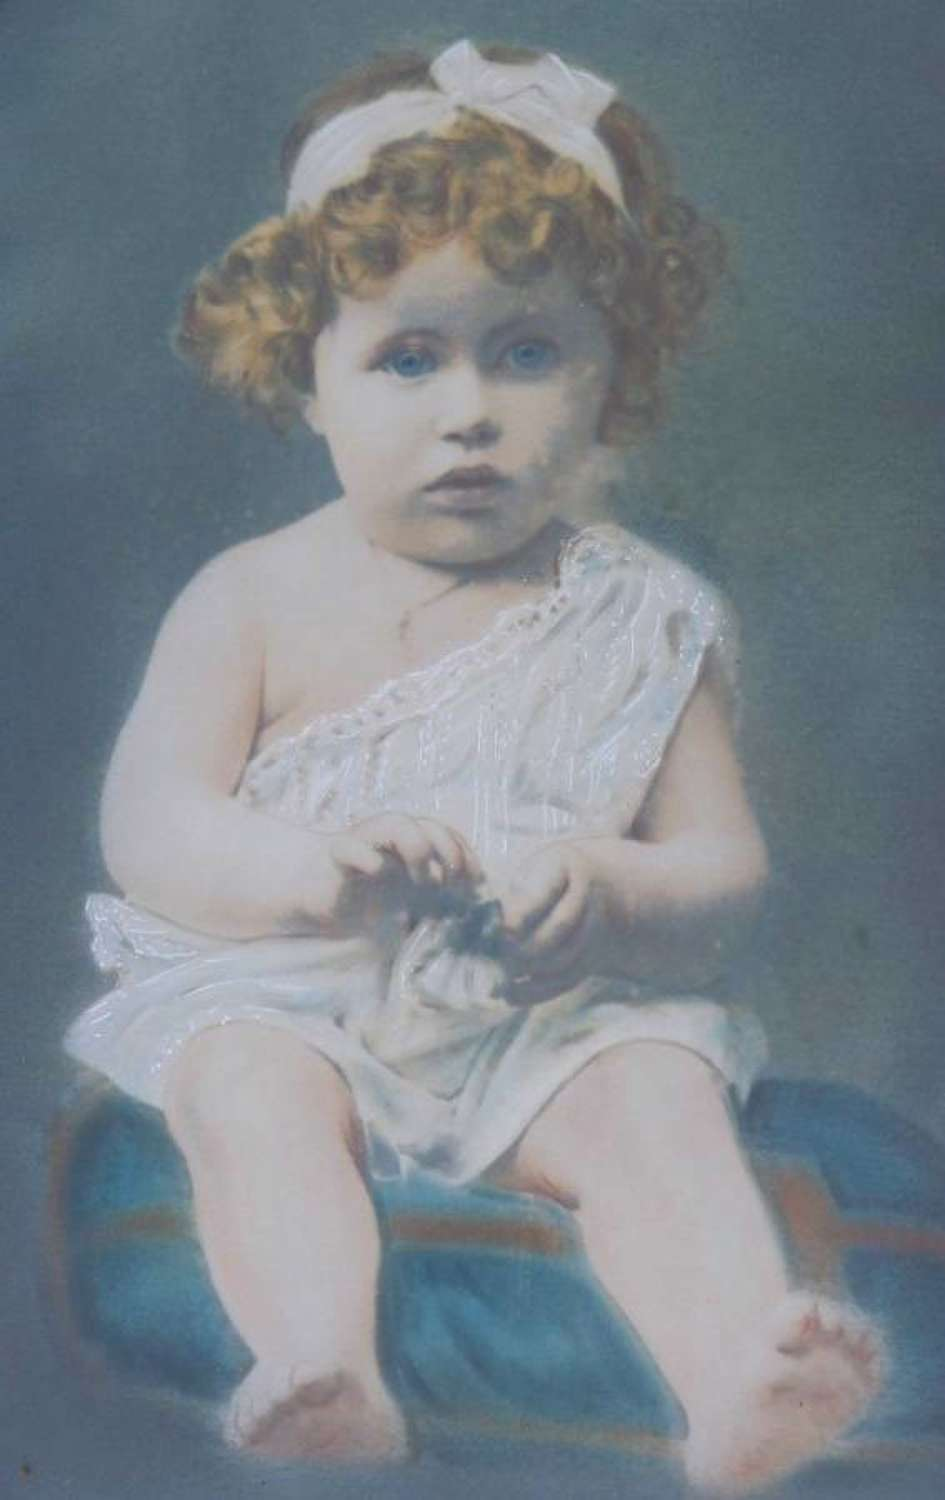 Old Photograph of Young Girl signed Legarcon 1921 Paris